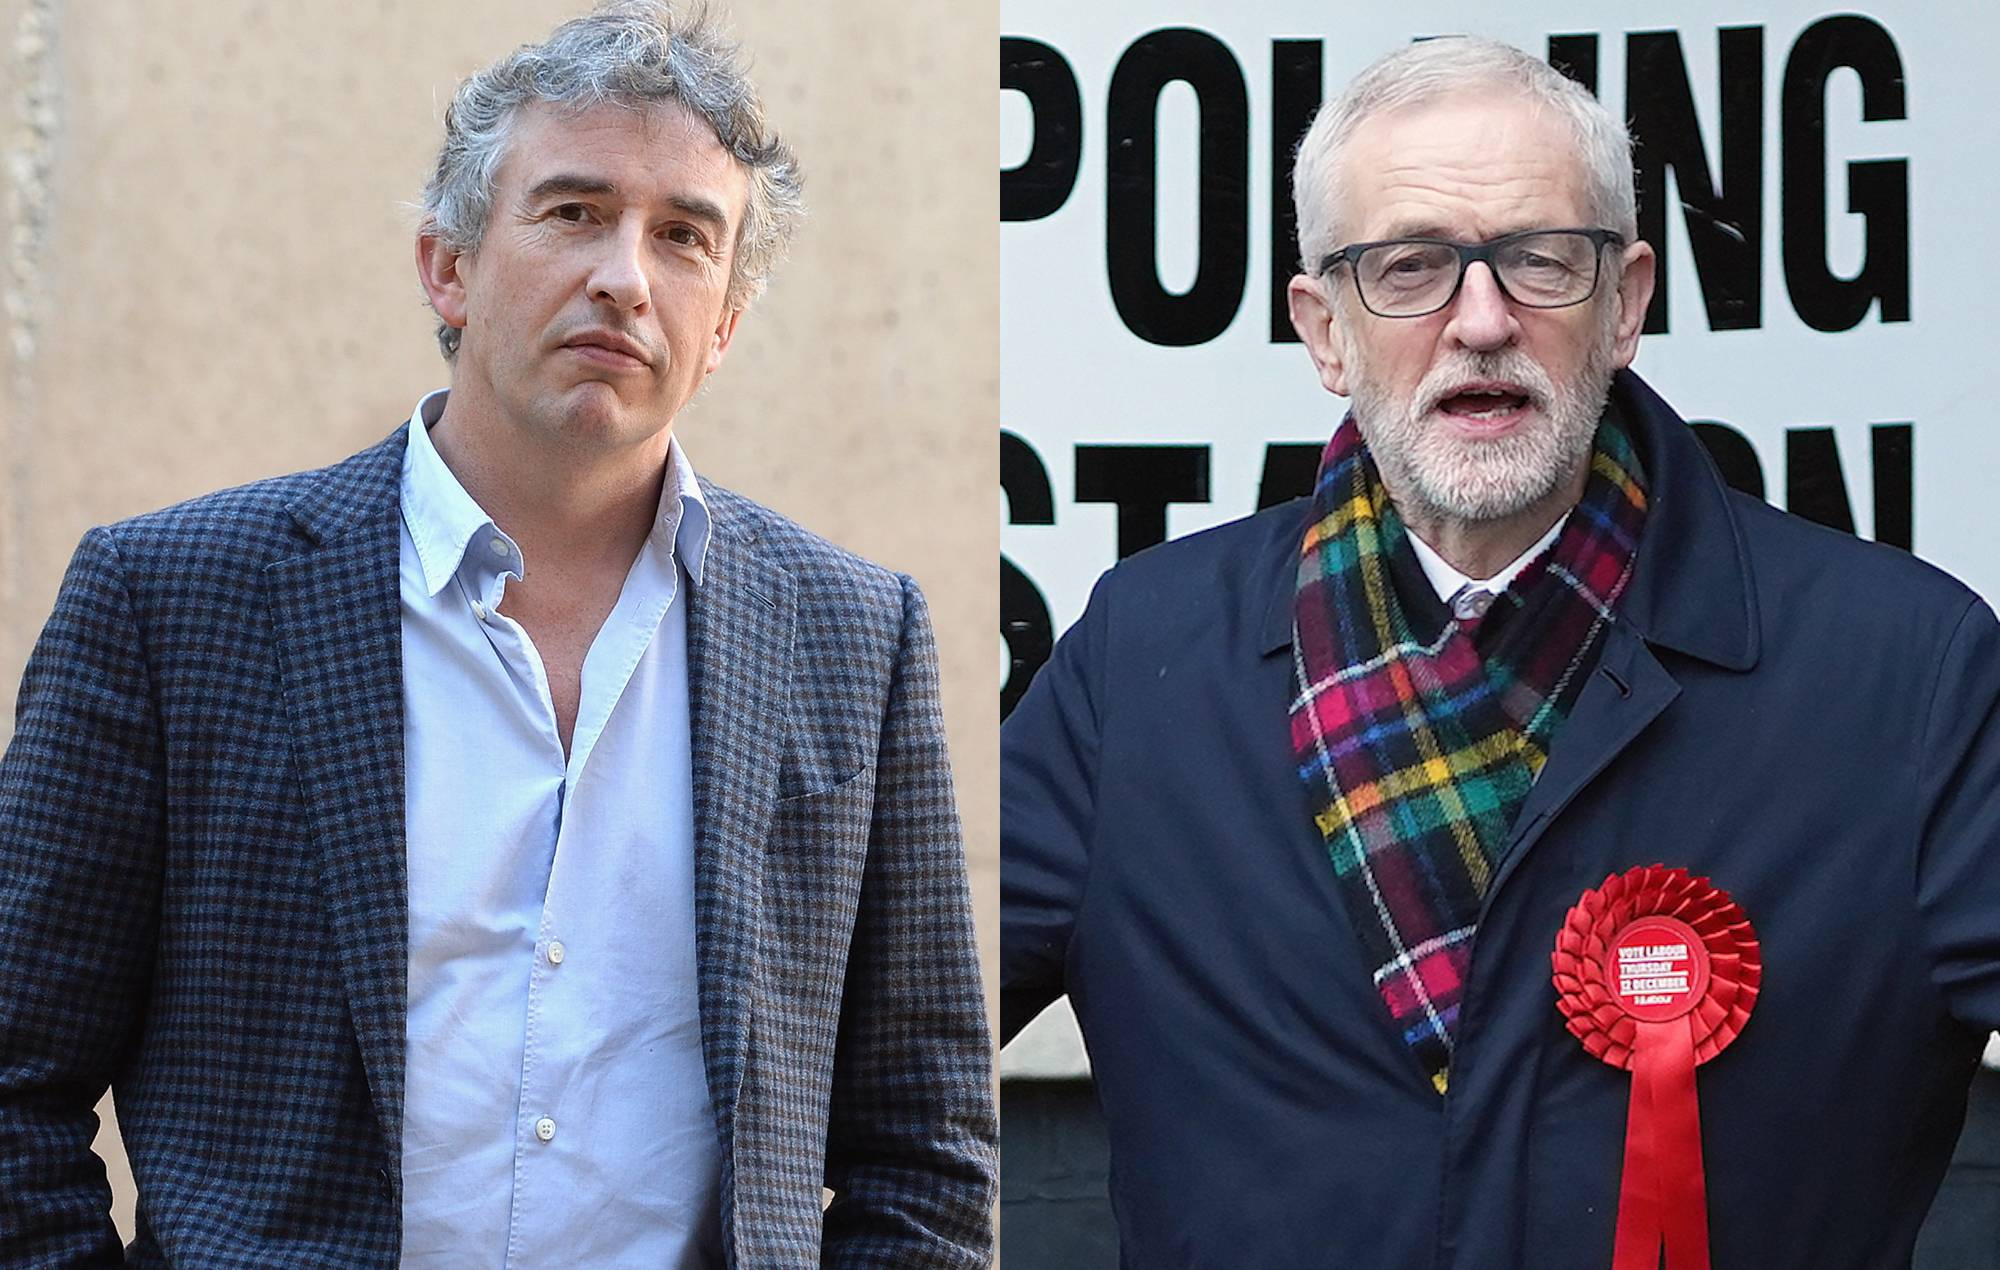 """Steve Coogan reflects on Jeremy Corbyn's election defeat: """"It was a personality thing"""""""